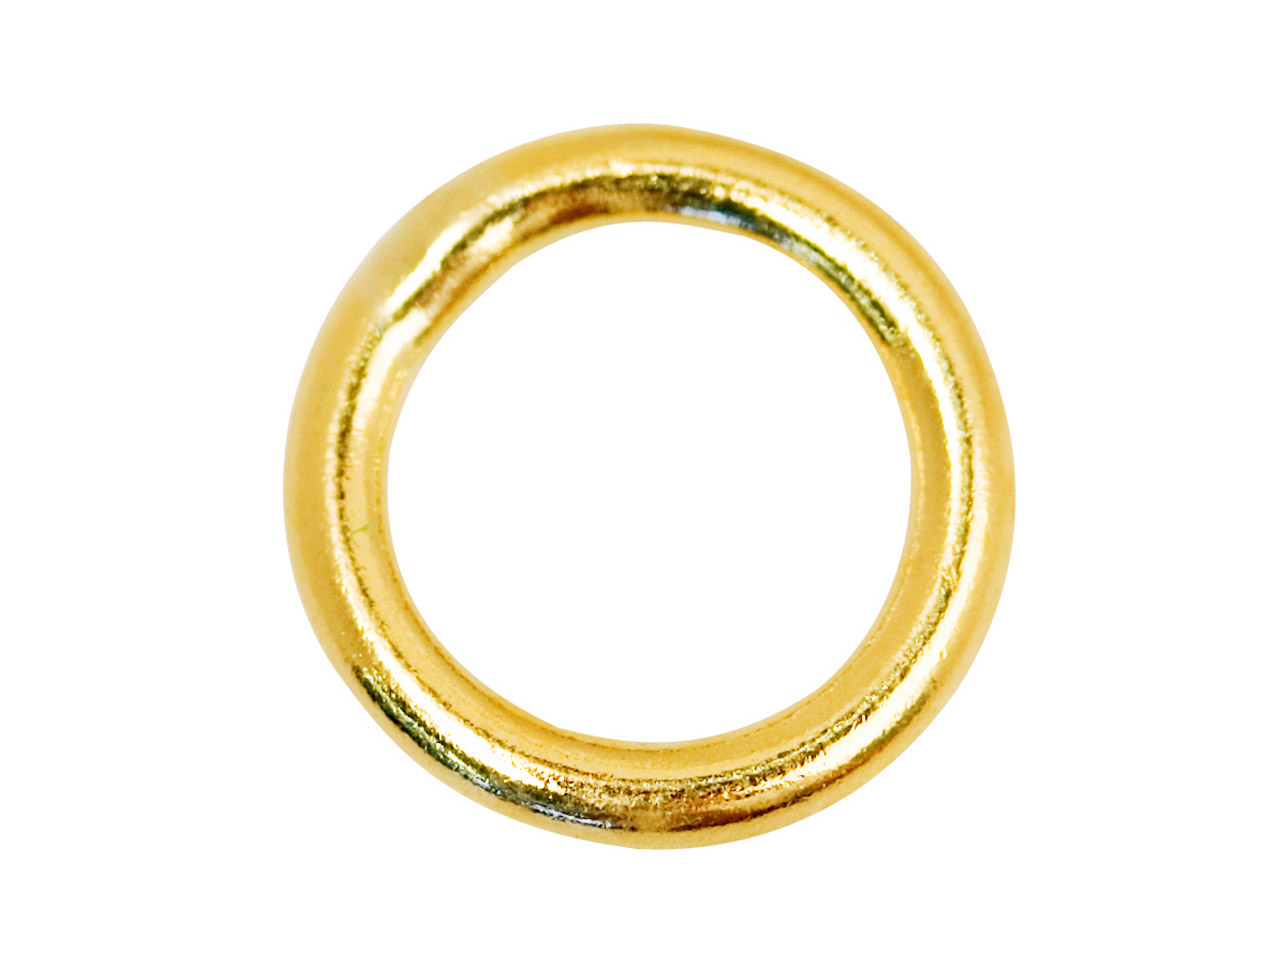 9ct Yellow 8mm Closed Jump Ring    Pack of 4 1.2mm Round Wire